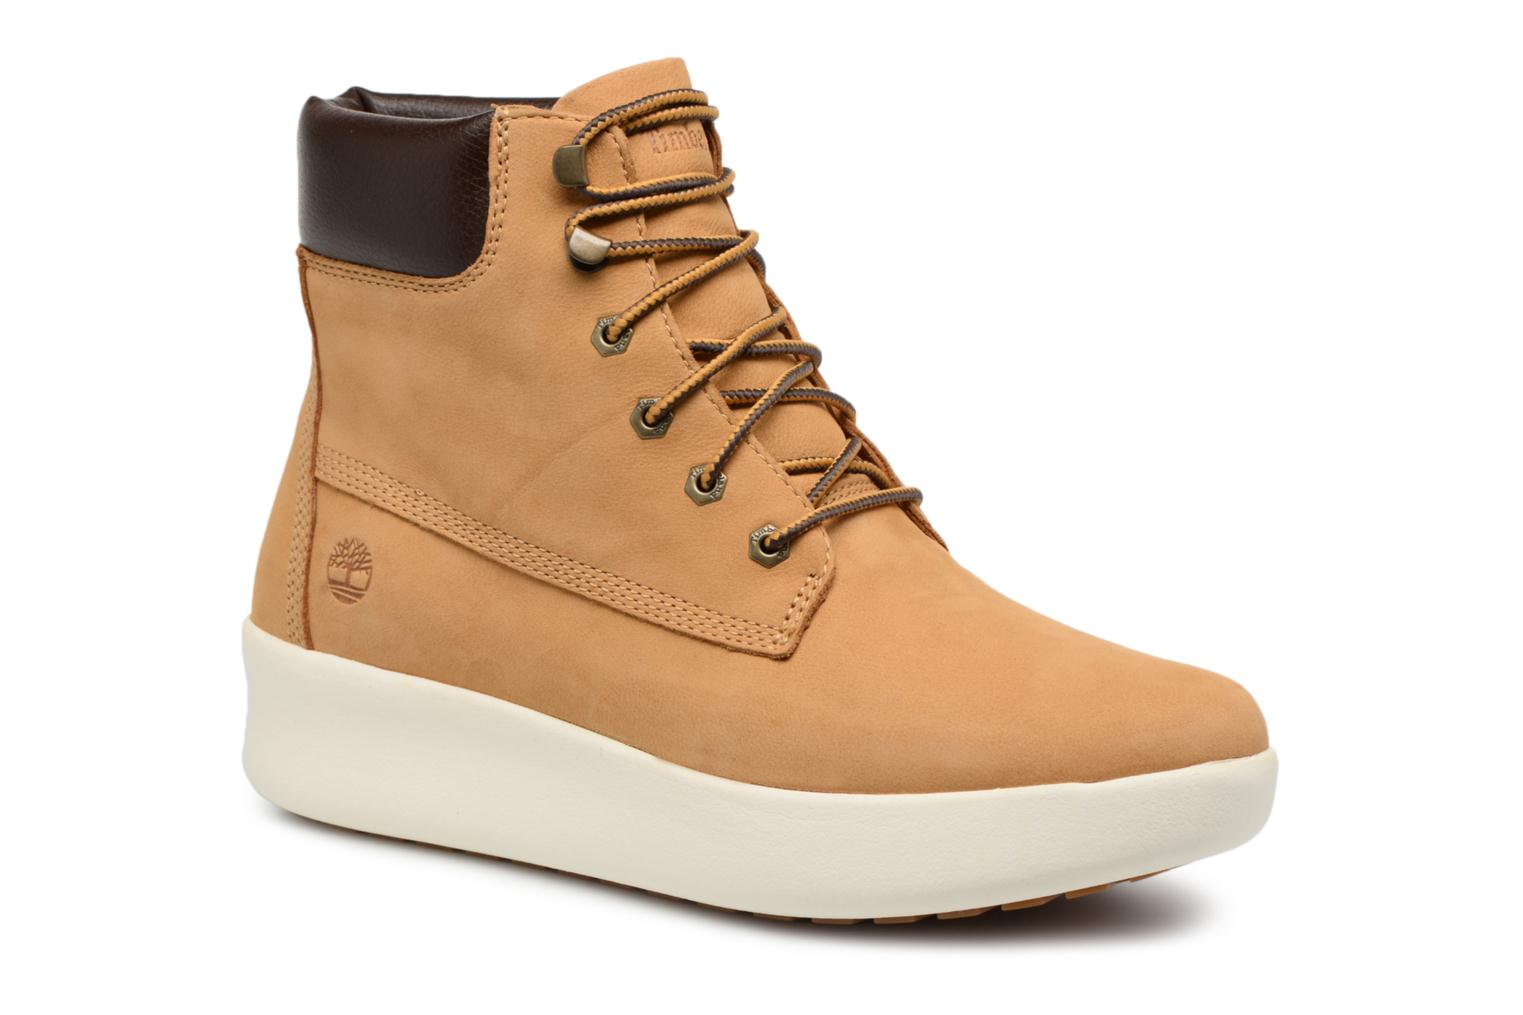 Timberland Boots BERLIN PARK 6 INCH Timberland soldes 74phcixQ